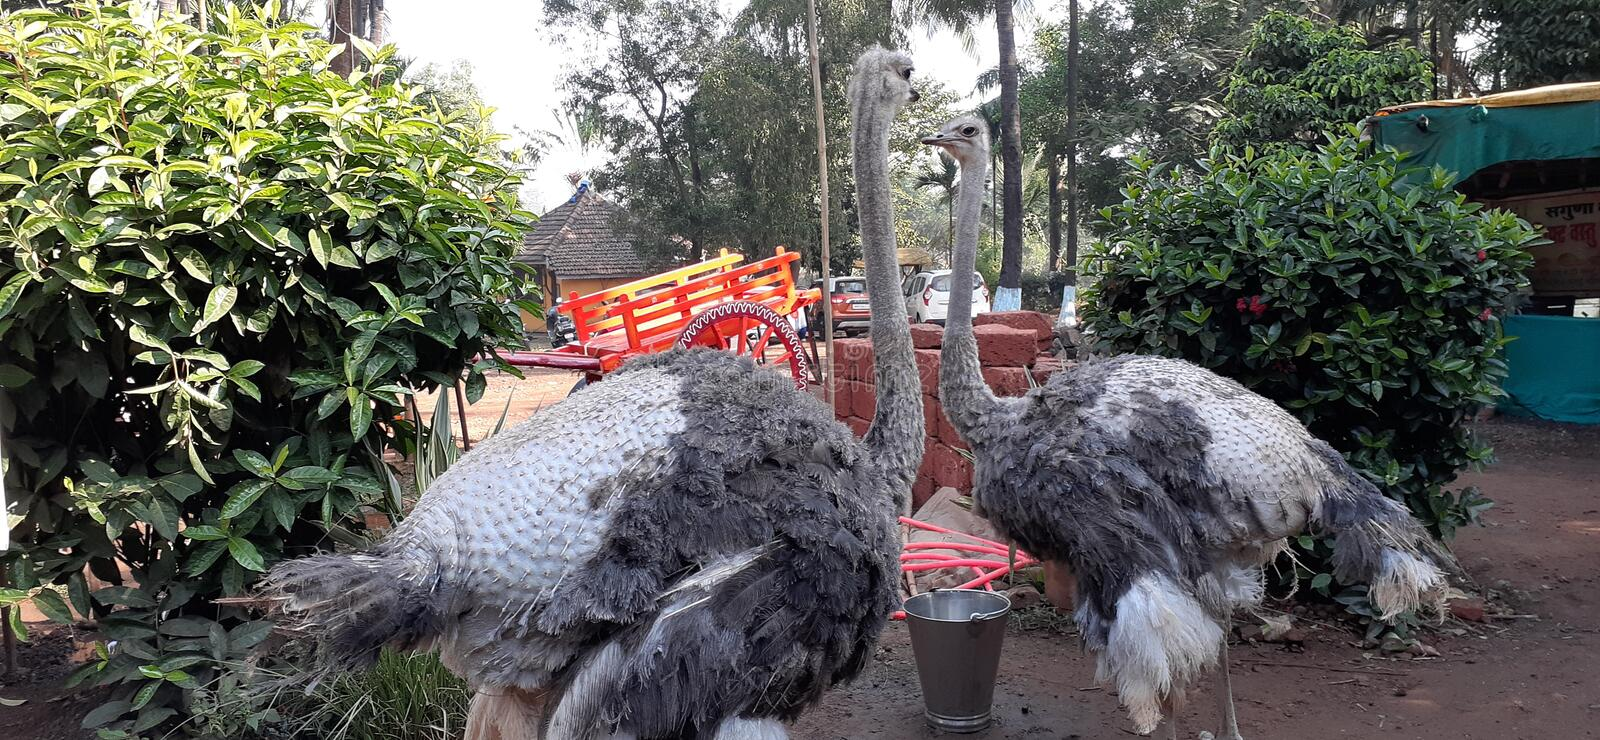 OSTRICH IN INDIA FOR FUN royalty free stock images